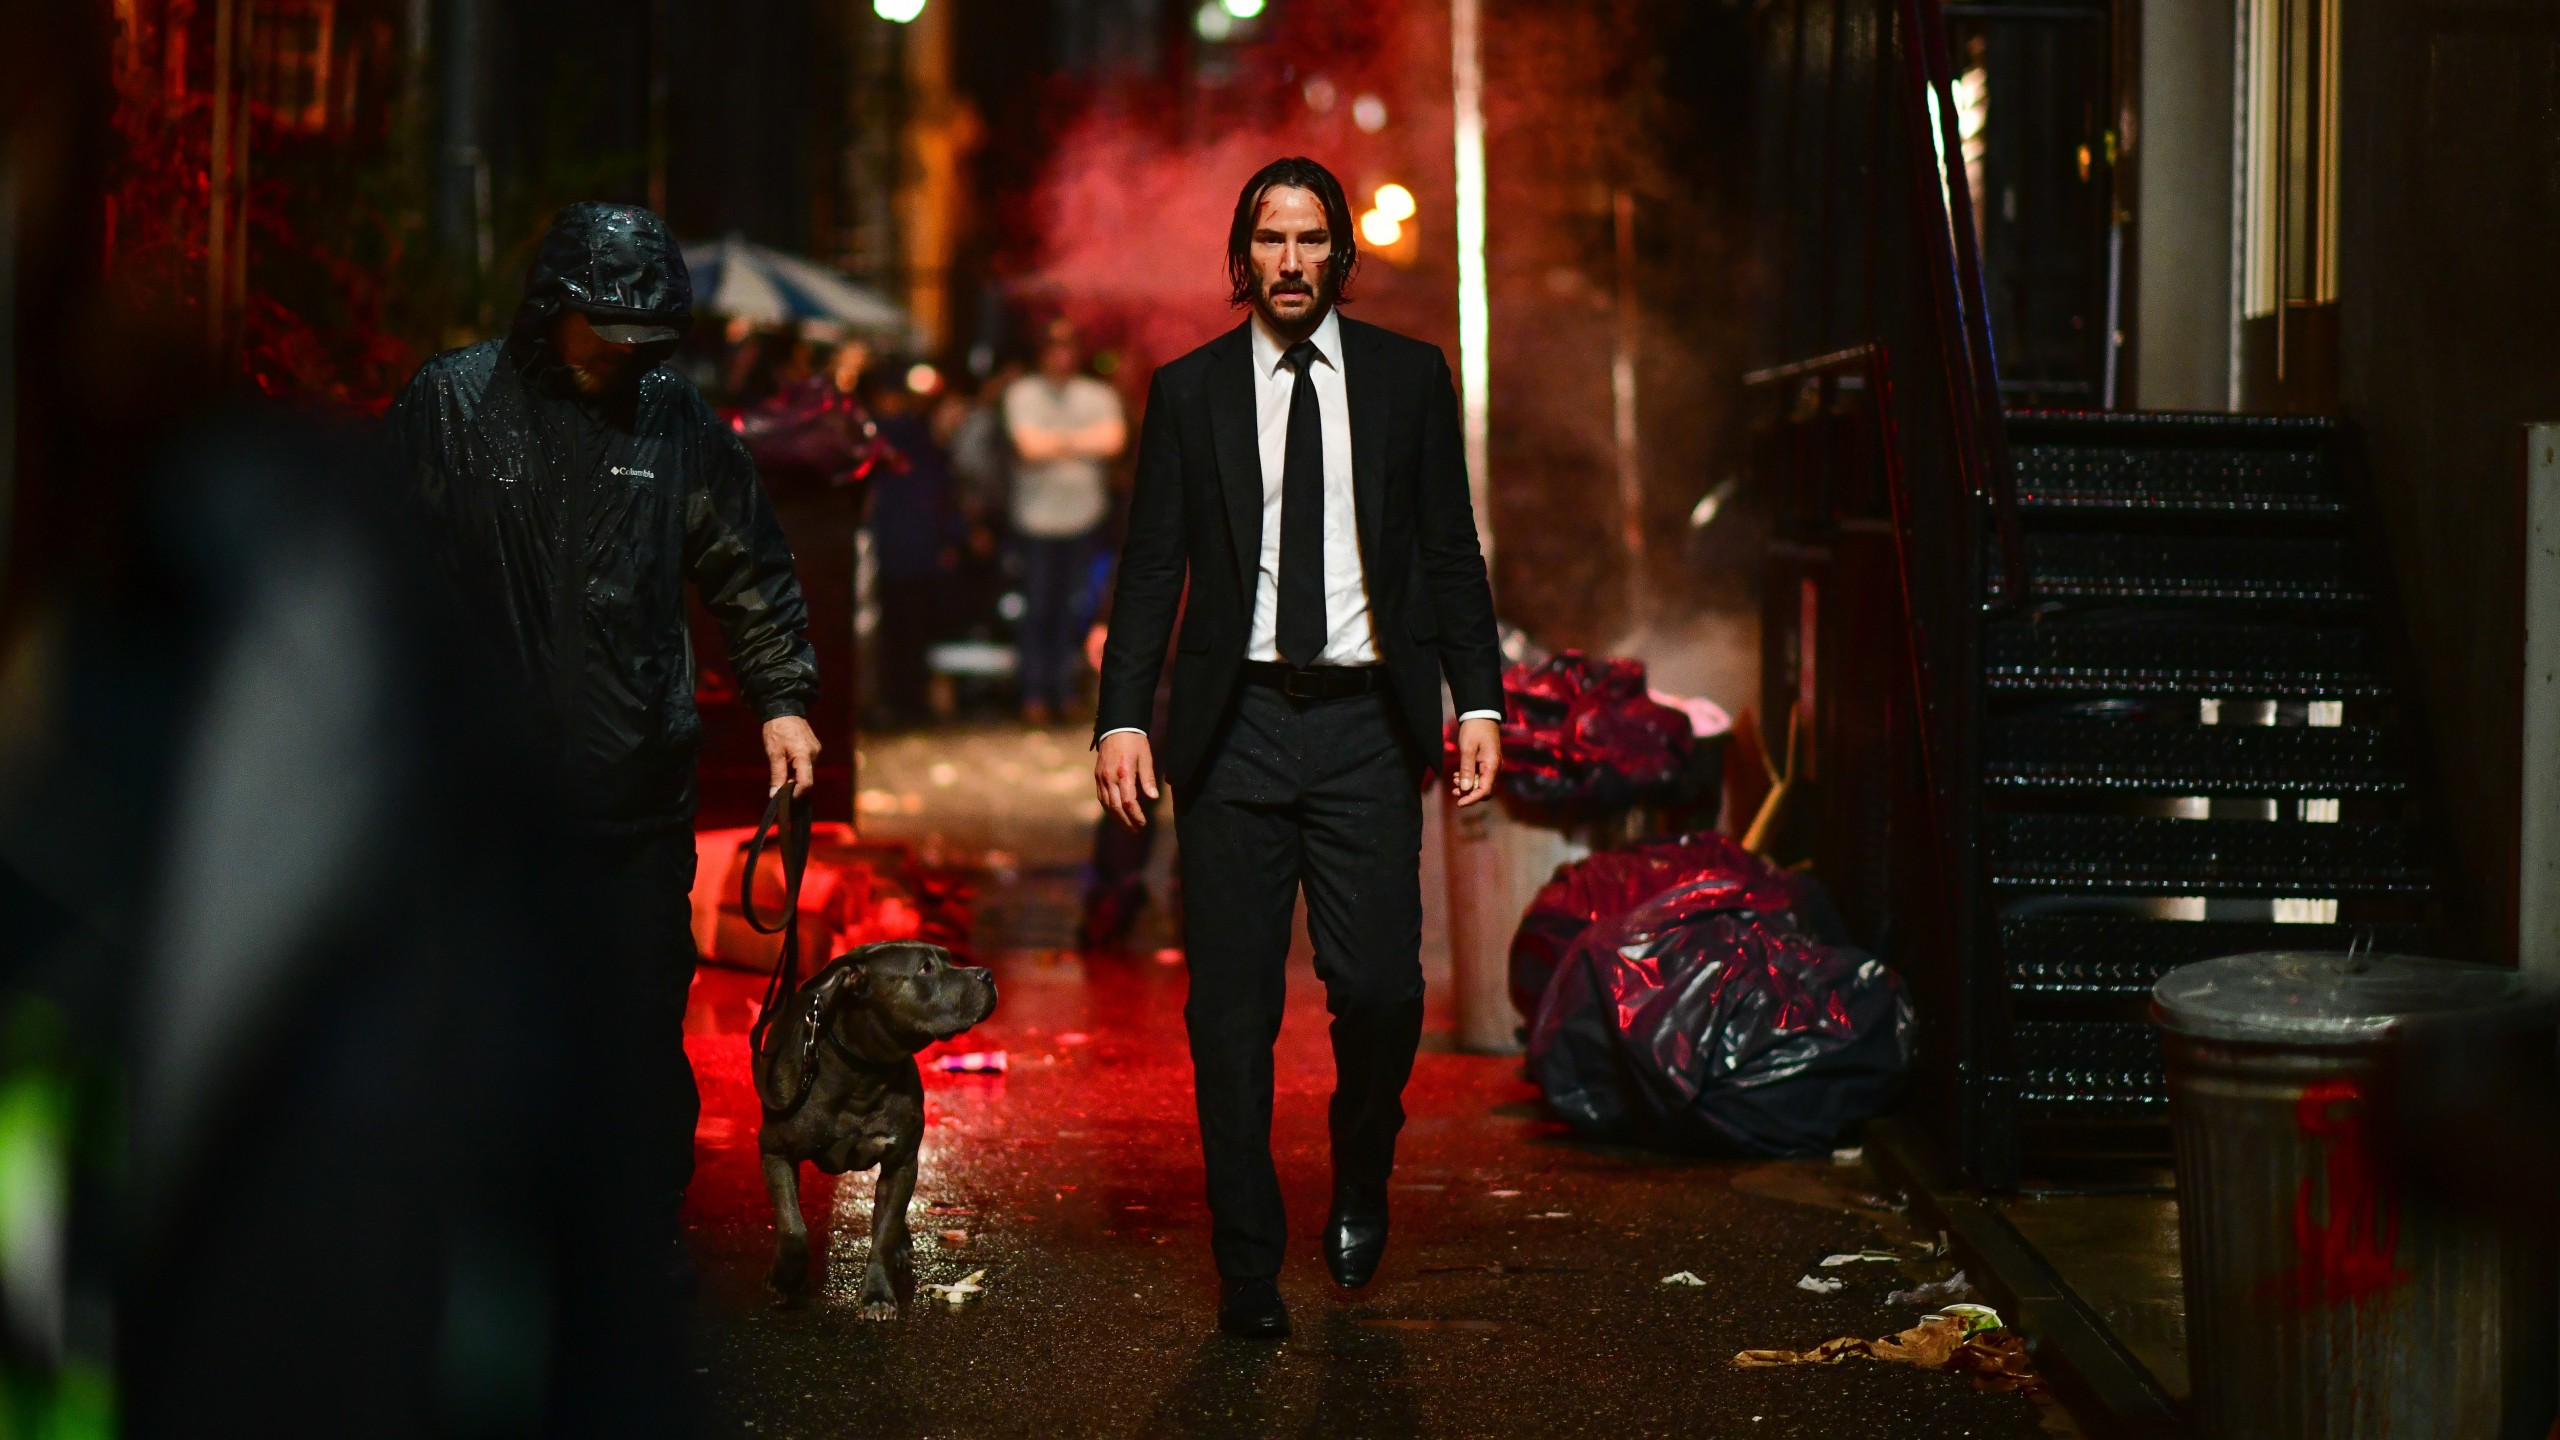 wallpaper john wick 3 parabellum  keanu reeves  8k  movies  20297